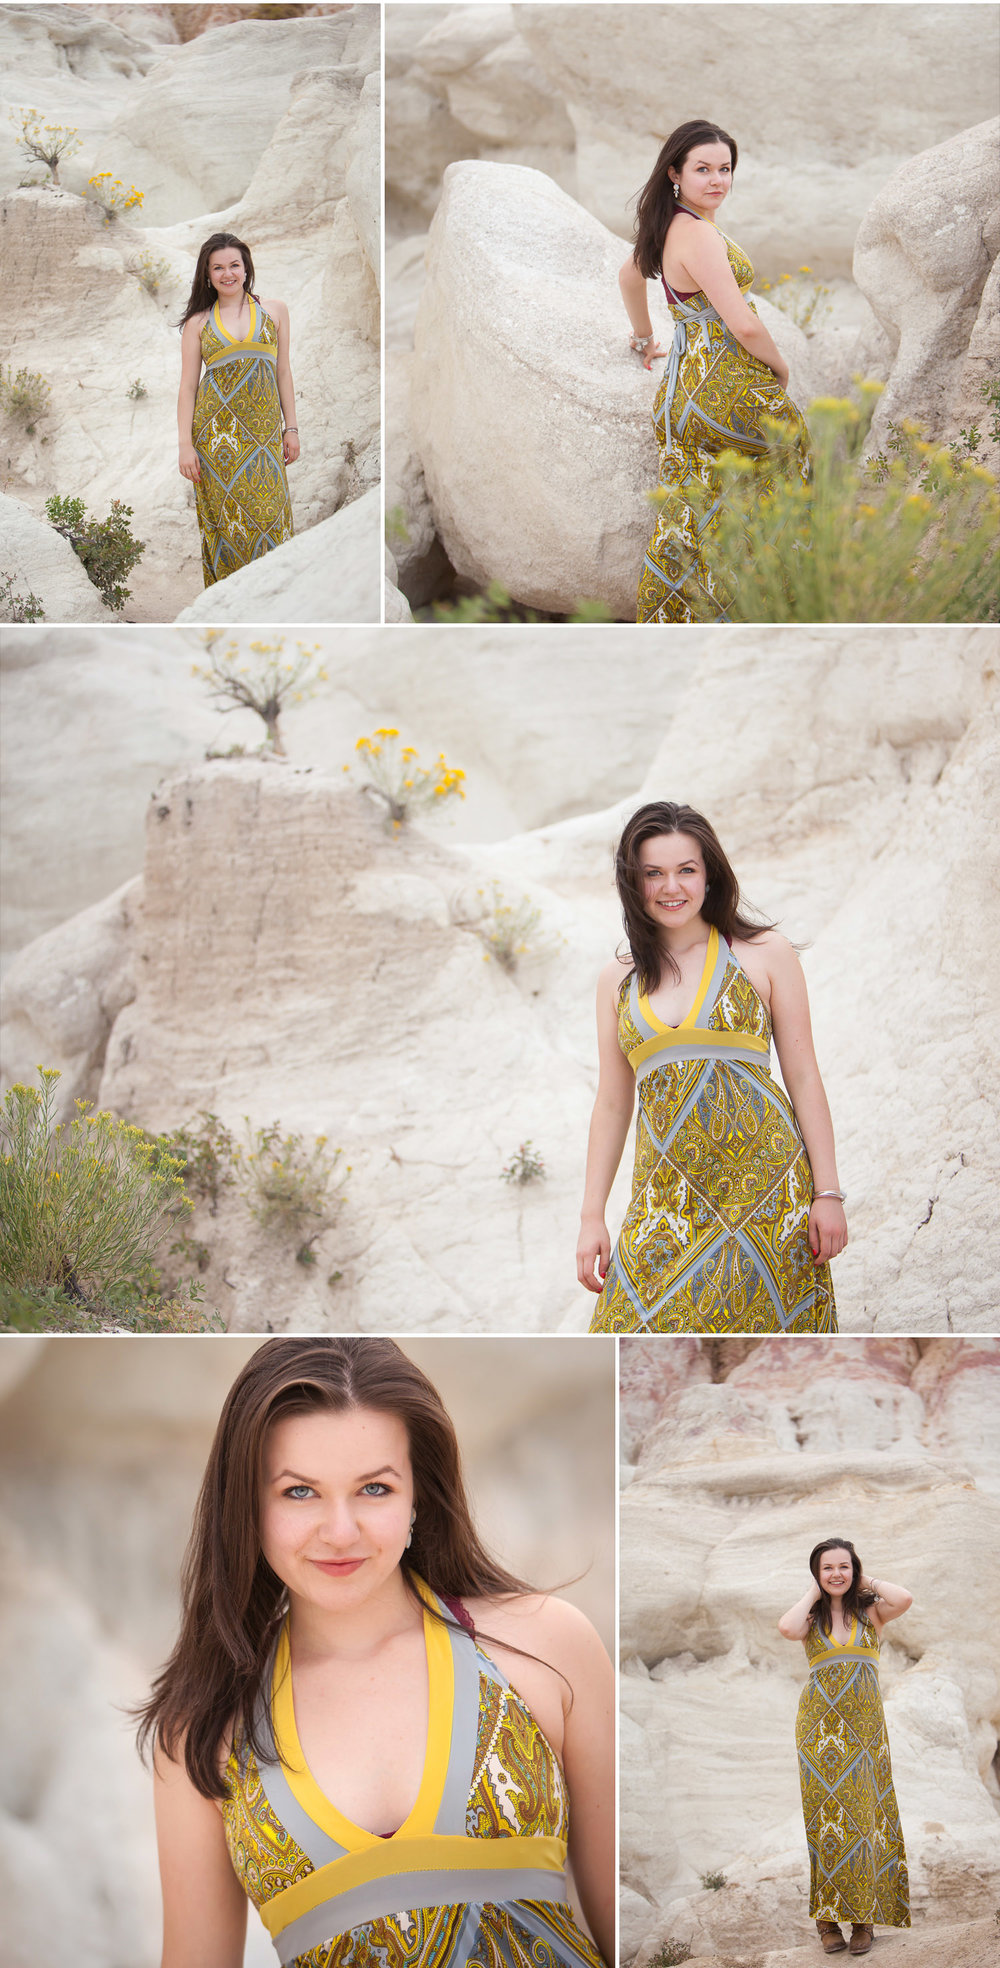 Amazing location for unique senior pictures in sandstone geology near Colorado Springs, with photographer Jennifer Koskinen, Merritt Portrait Studio